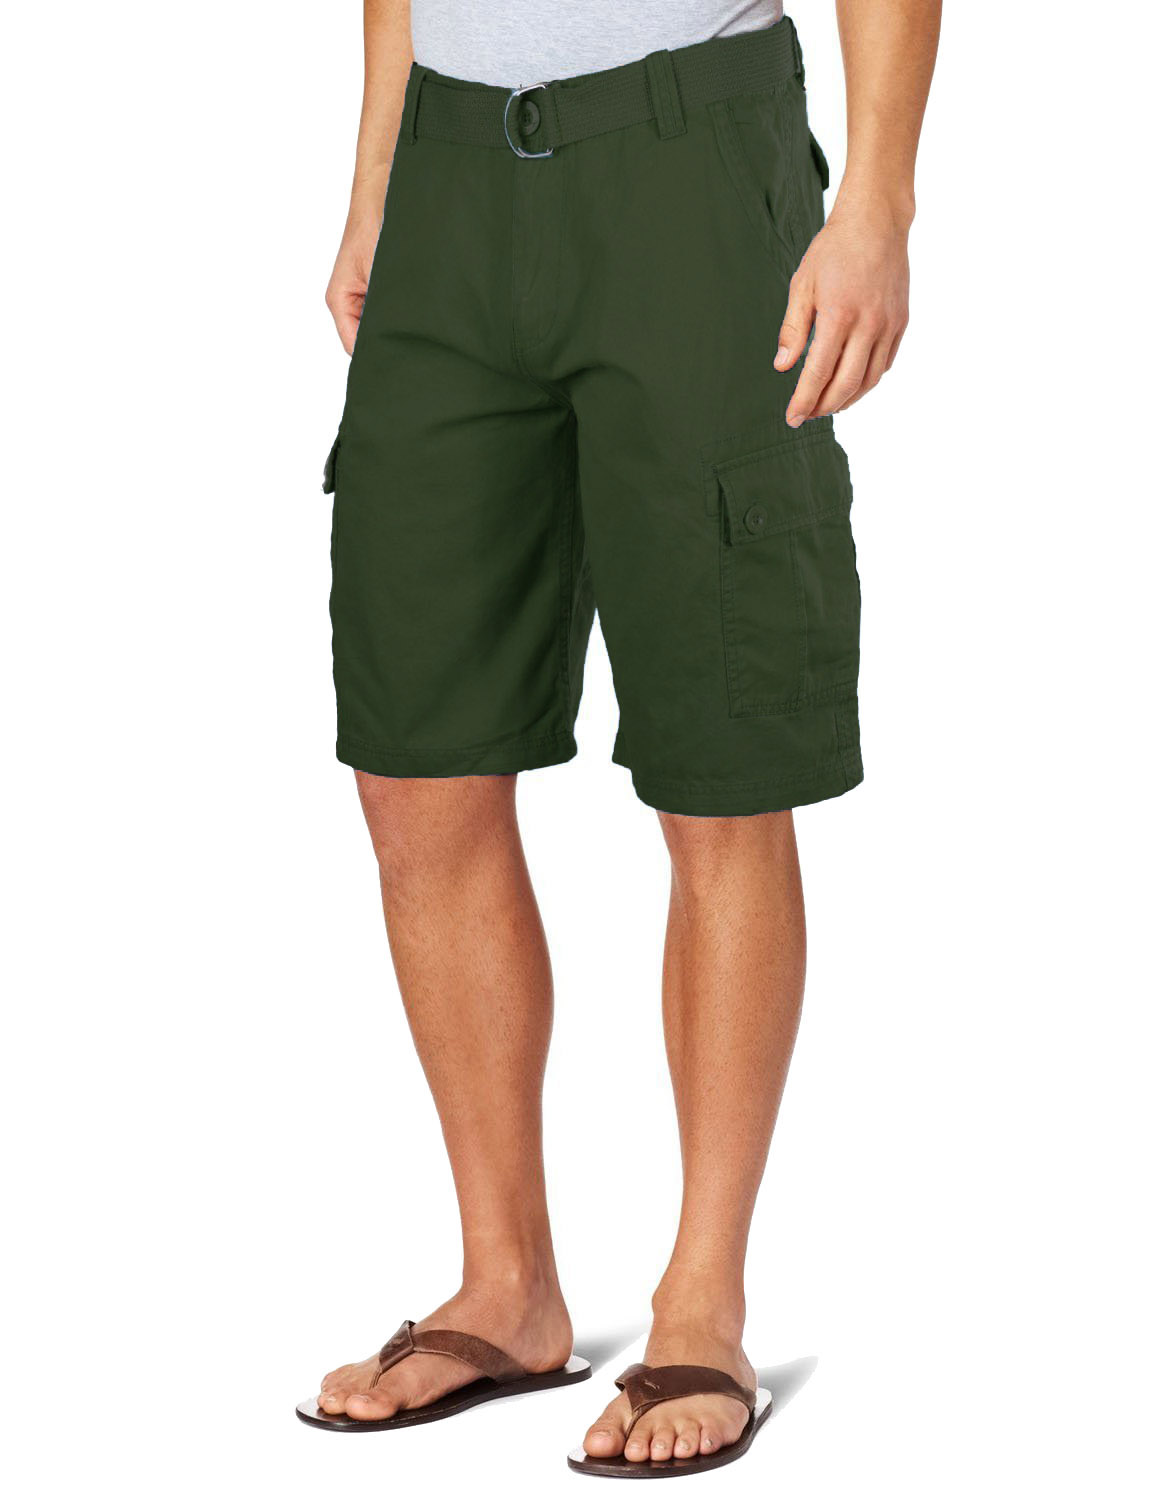 Men's Casual Twill Cargo Shorts with Belt